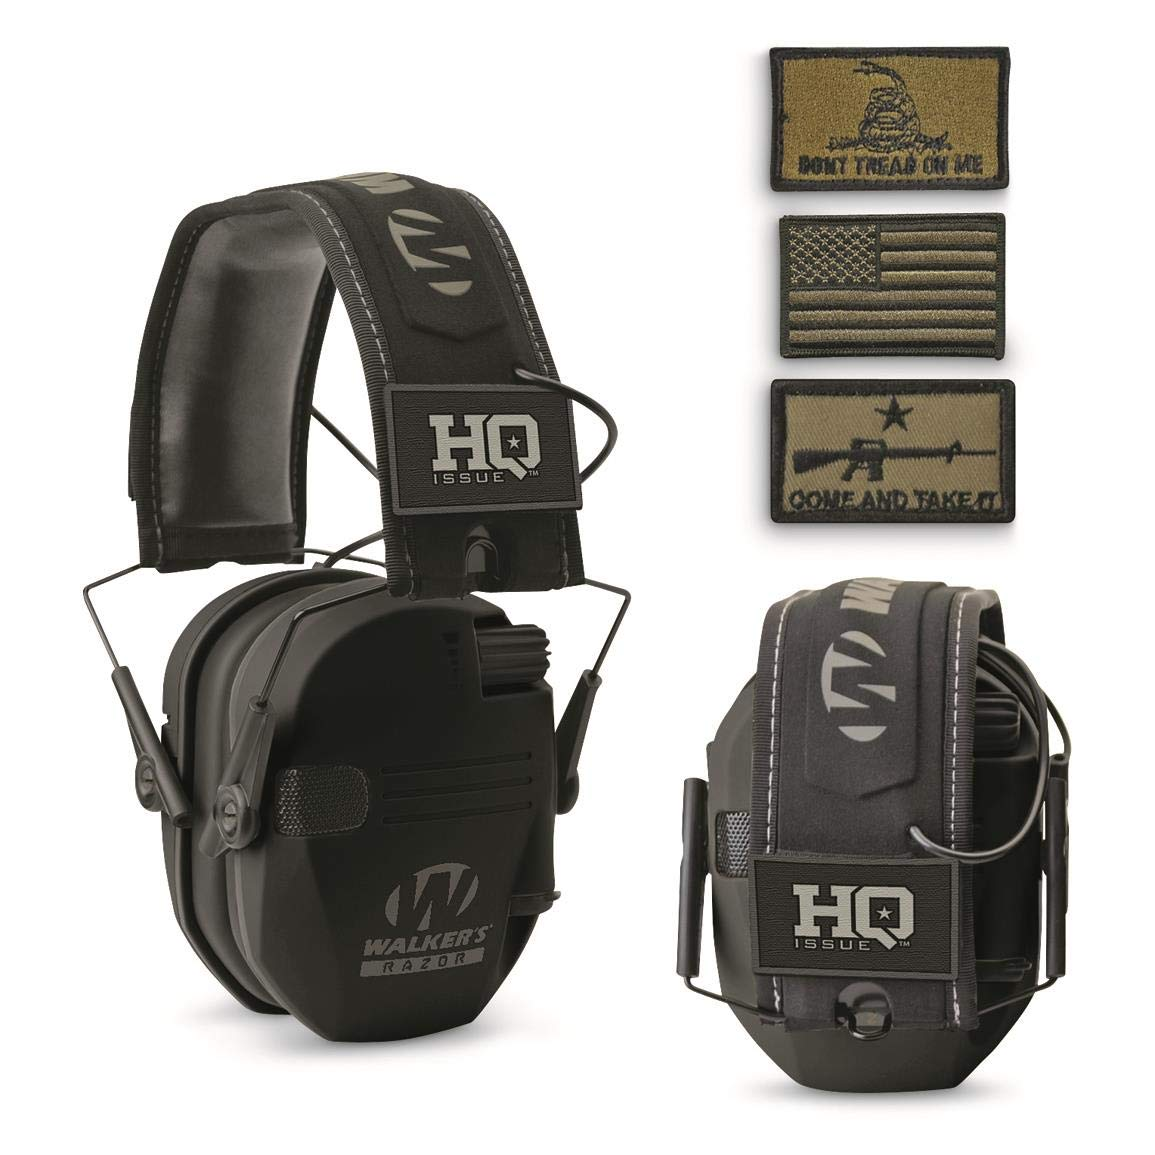 HQ Issue Walker's Patriot Series Electronic Ear Muffs, Black